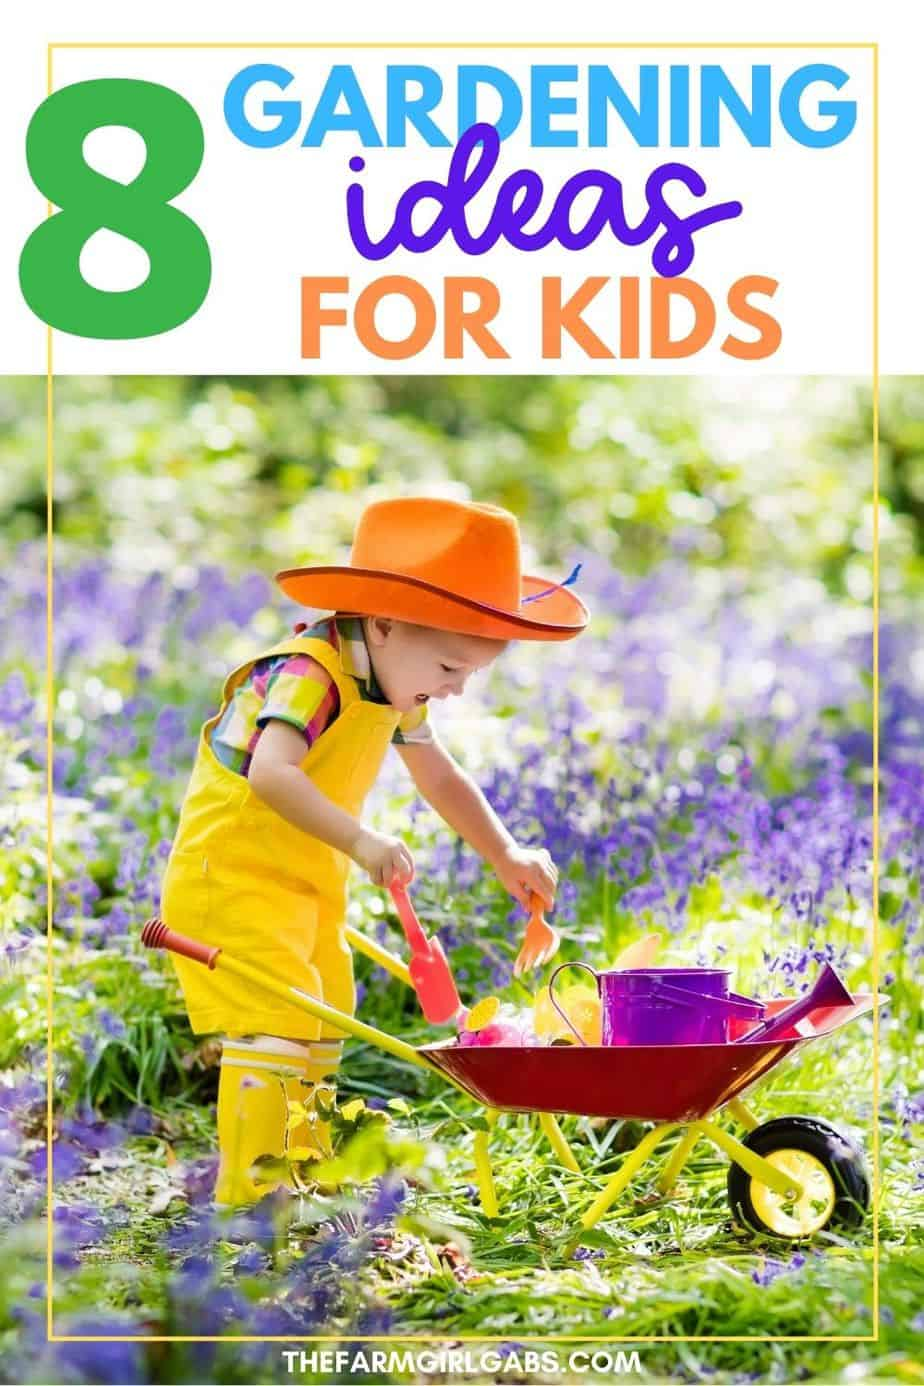 Gardening is a fun family activity. These DIY garden ideas for kids are a fun way to let kids dig in and start growing a garden. The Eight themed garden ideas for kids is a fun activity. Check out these helpful gardening tips to grow a beautiful garden.